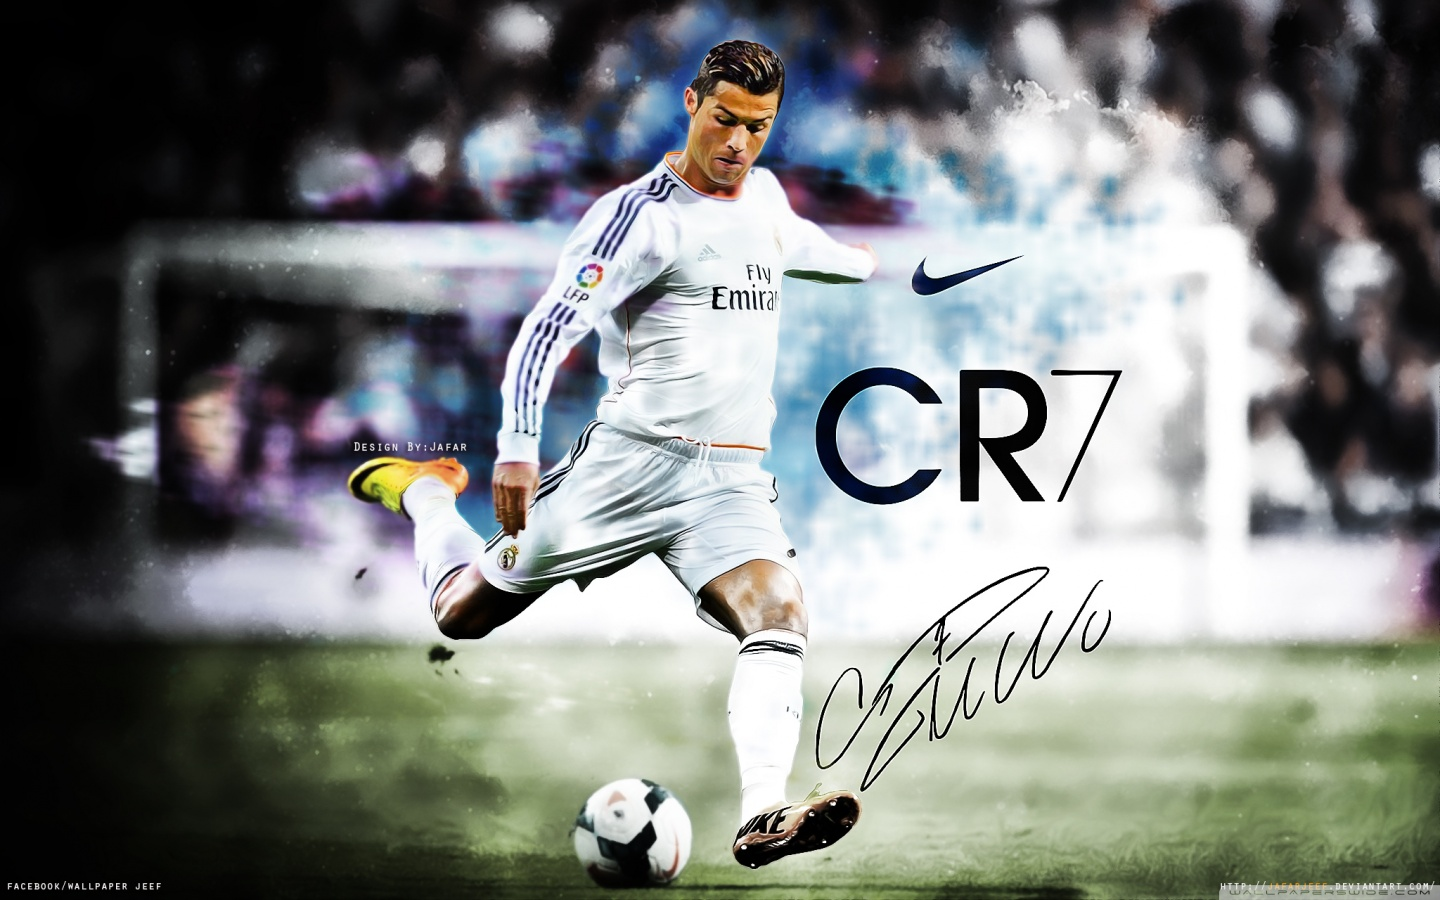 Cristiano Ronaldo HD Wallpapers 2015 Right Click Save Target As 1440x900